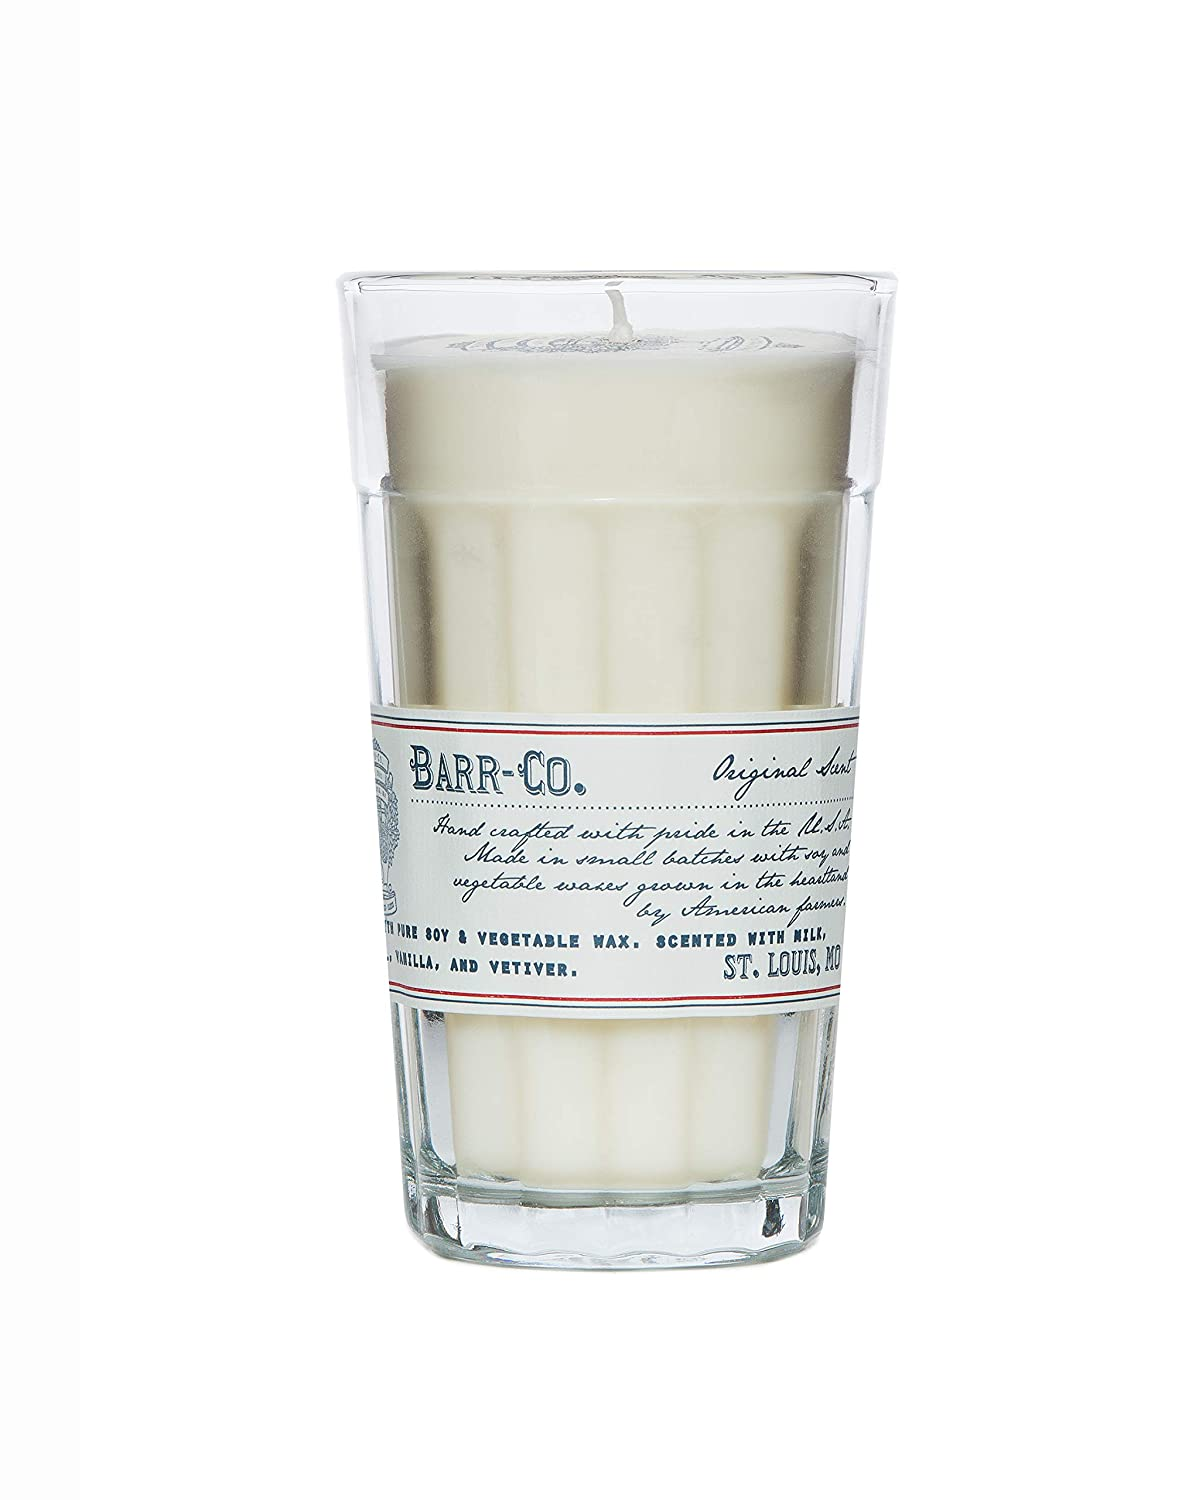 Barr Co 10 oz Original aroma Pure de soja y verduras cera candle-made en los Estados Unidos